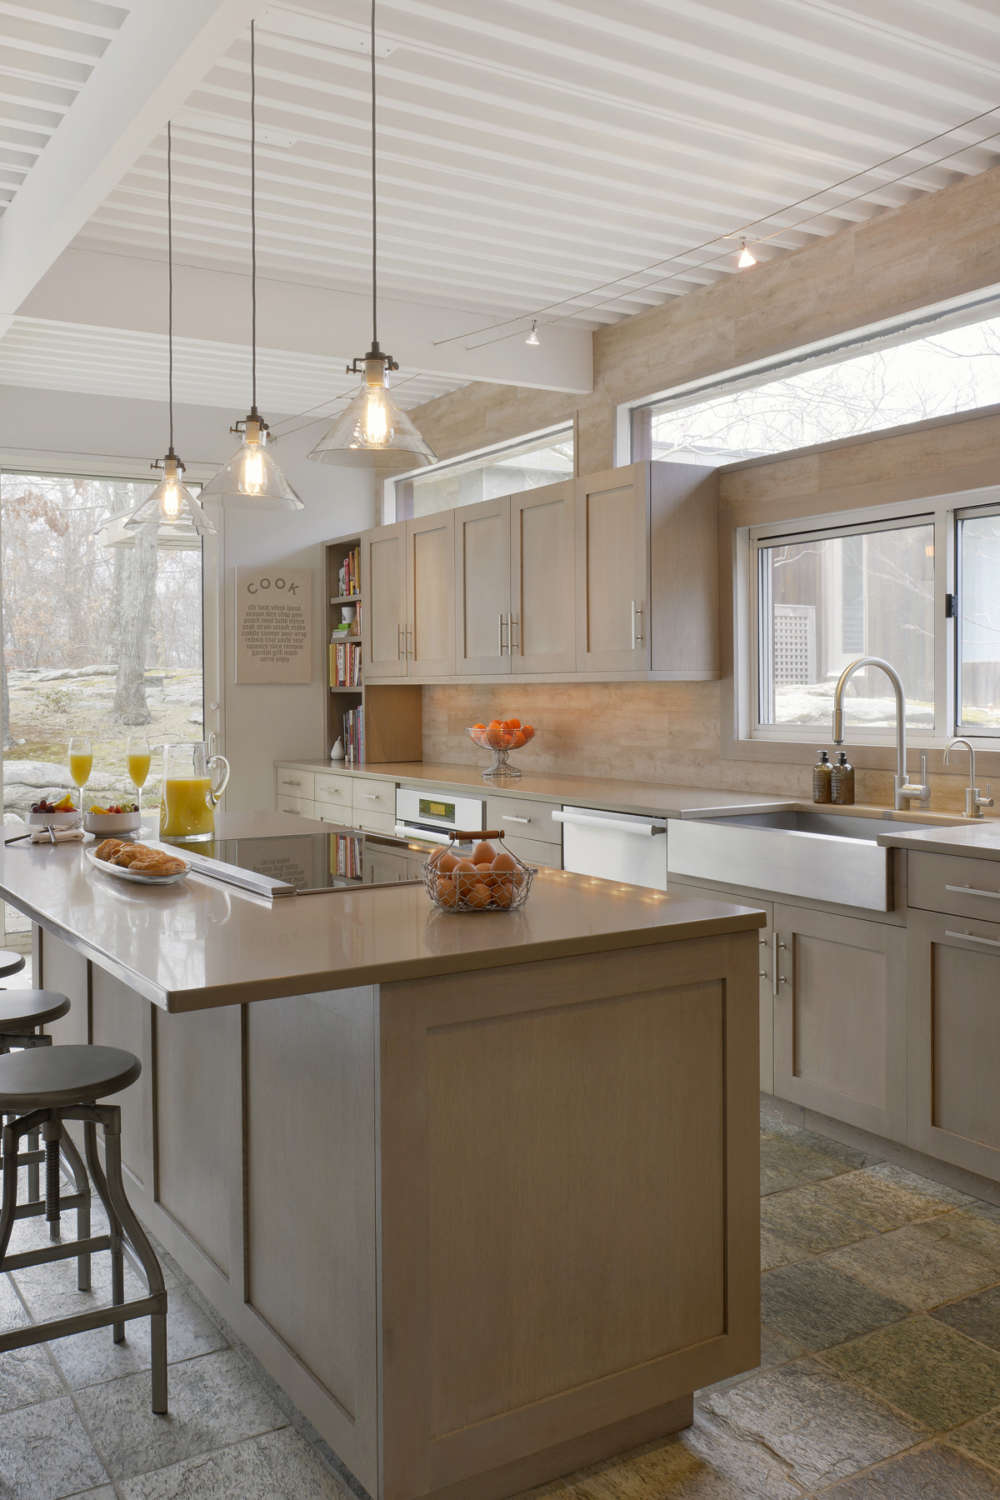 Rustic kitchen is flooded with light from sliders, transon windows and the industrial pendant lights over the island. Kitchen blends neutral quartz counters with soft travertine backspash and floor tiles and frameless, shaker style rift cut white oak Bilotta cabinets with Driftwood stain. Design by Danielle Florie of Bilotta Kitchens.